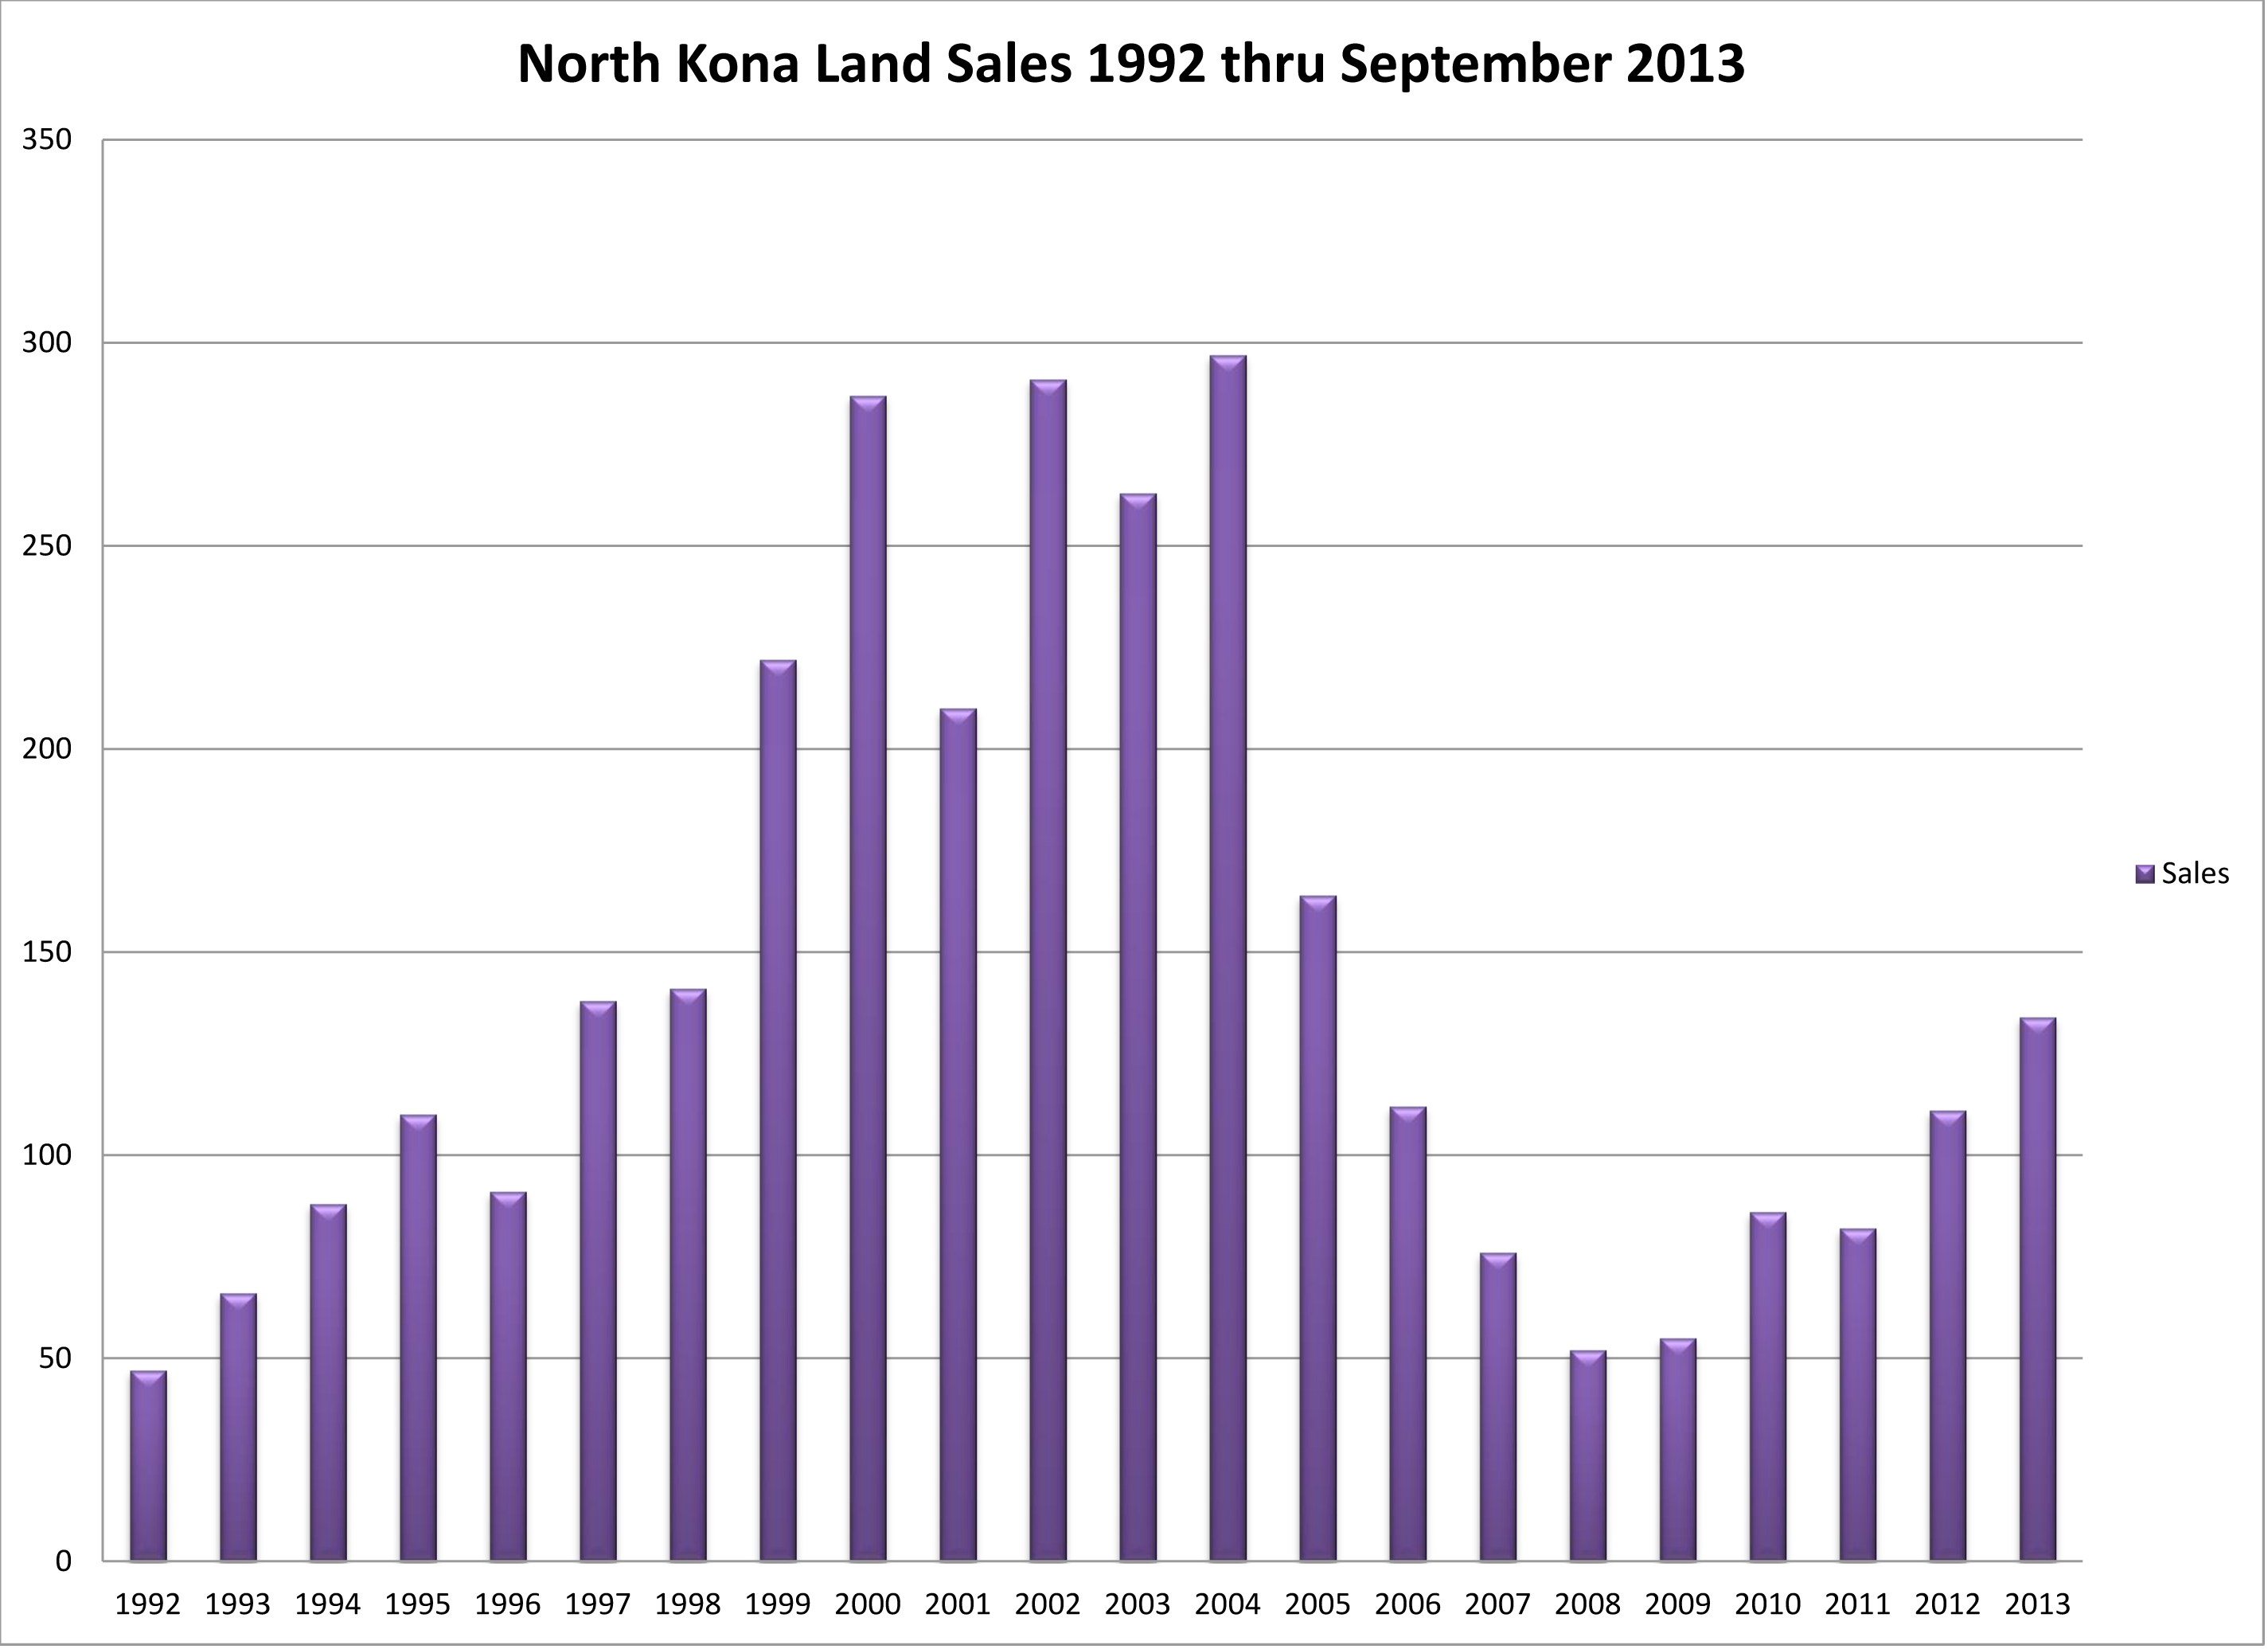 NK Land Sales 92 thru 0913 by Y